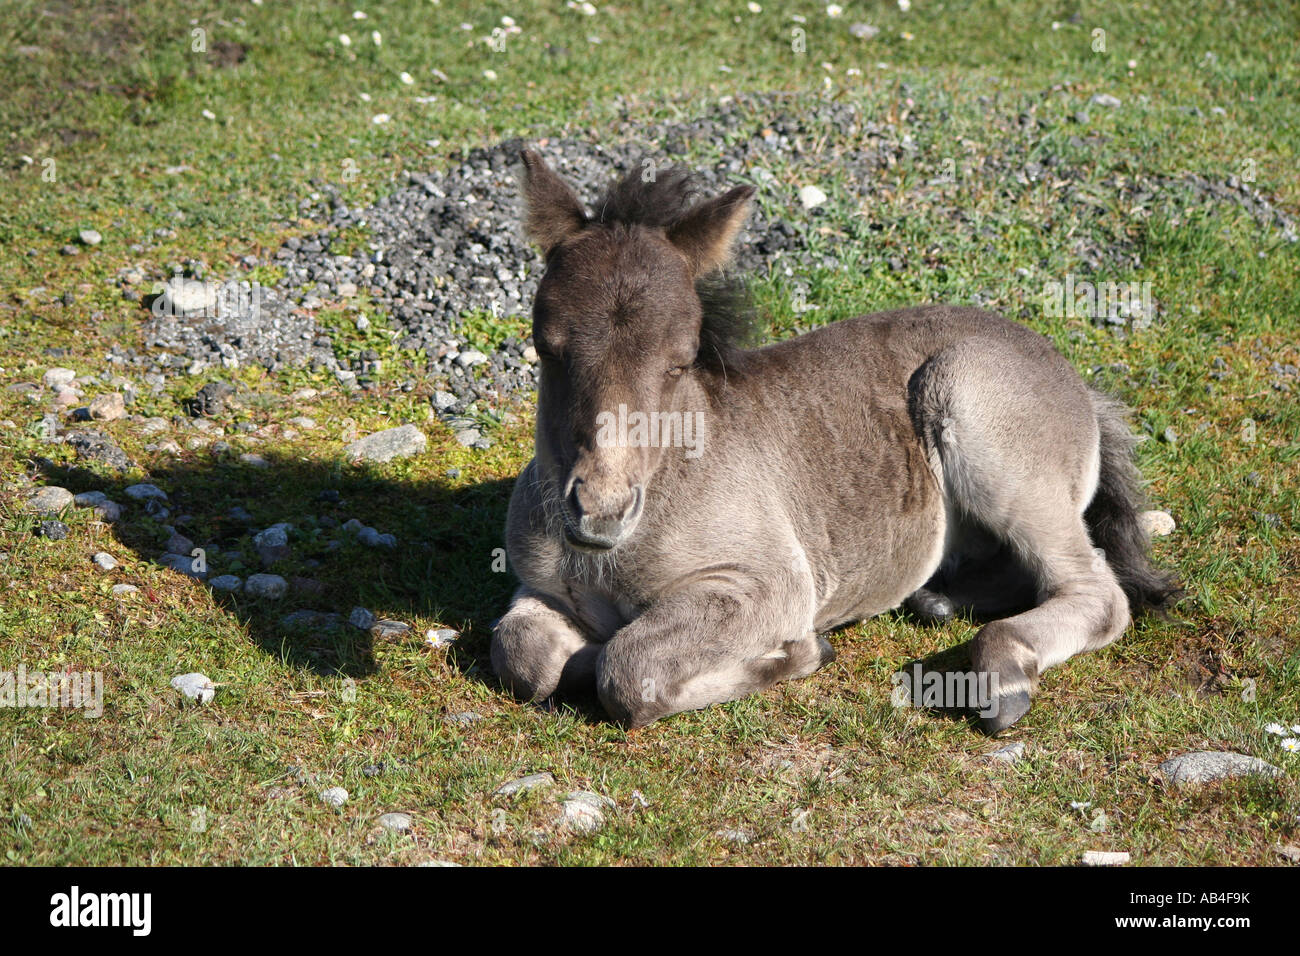 Eriskay pony foal sitting on grass Loch Druidibeg Nature reserve South Uist Outer Hebrides Scotland  June 2007 - Stock Image